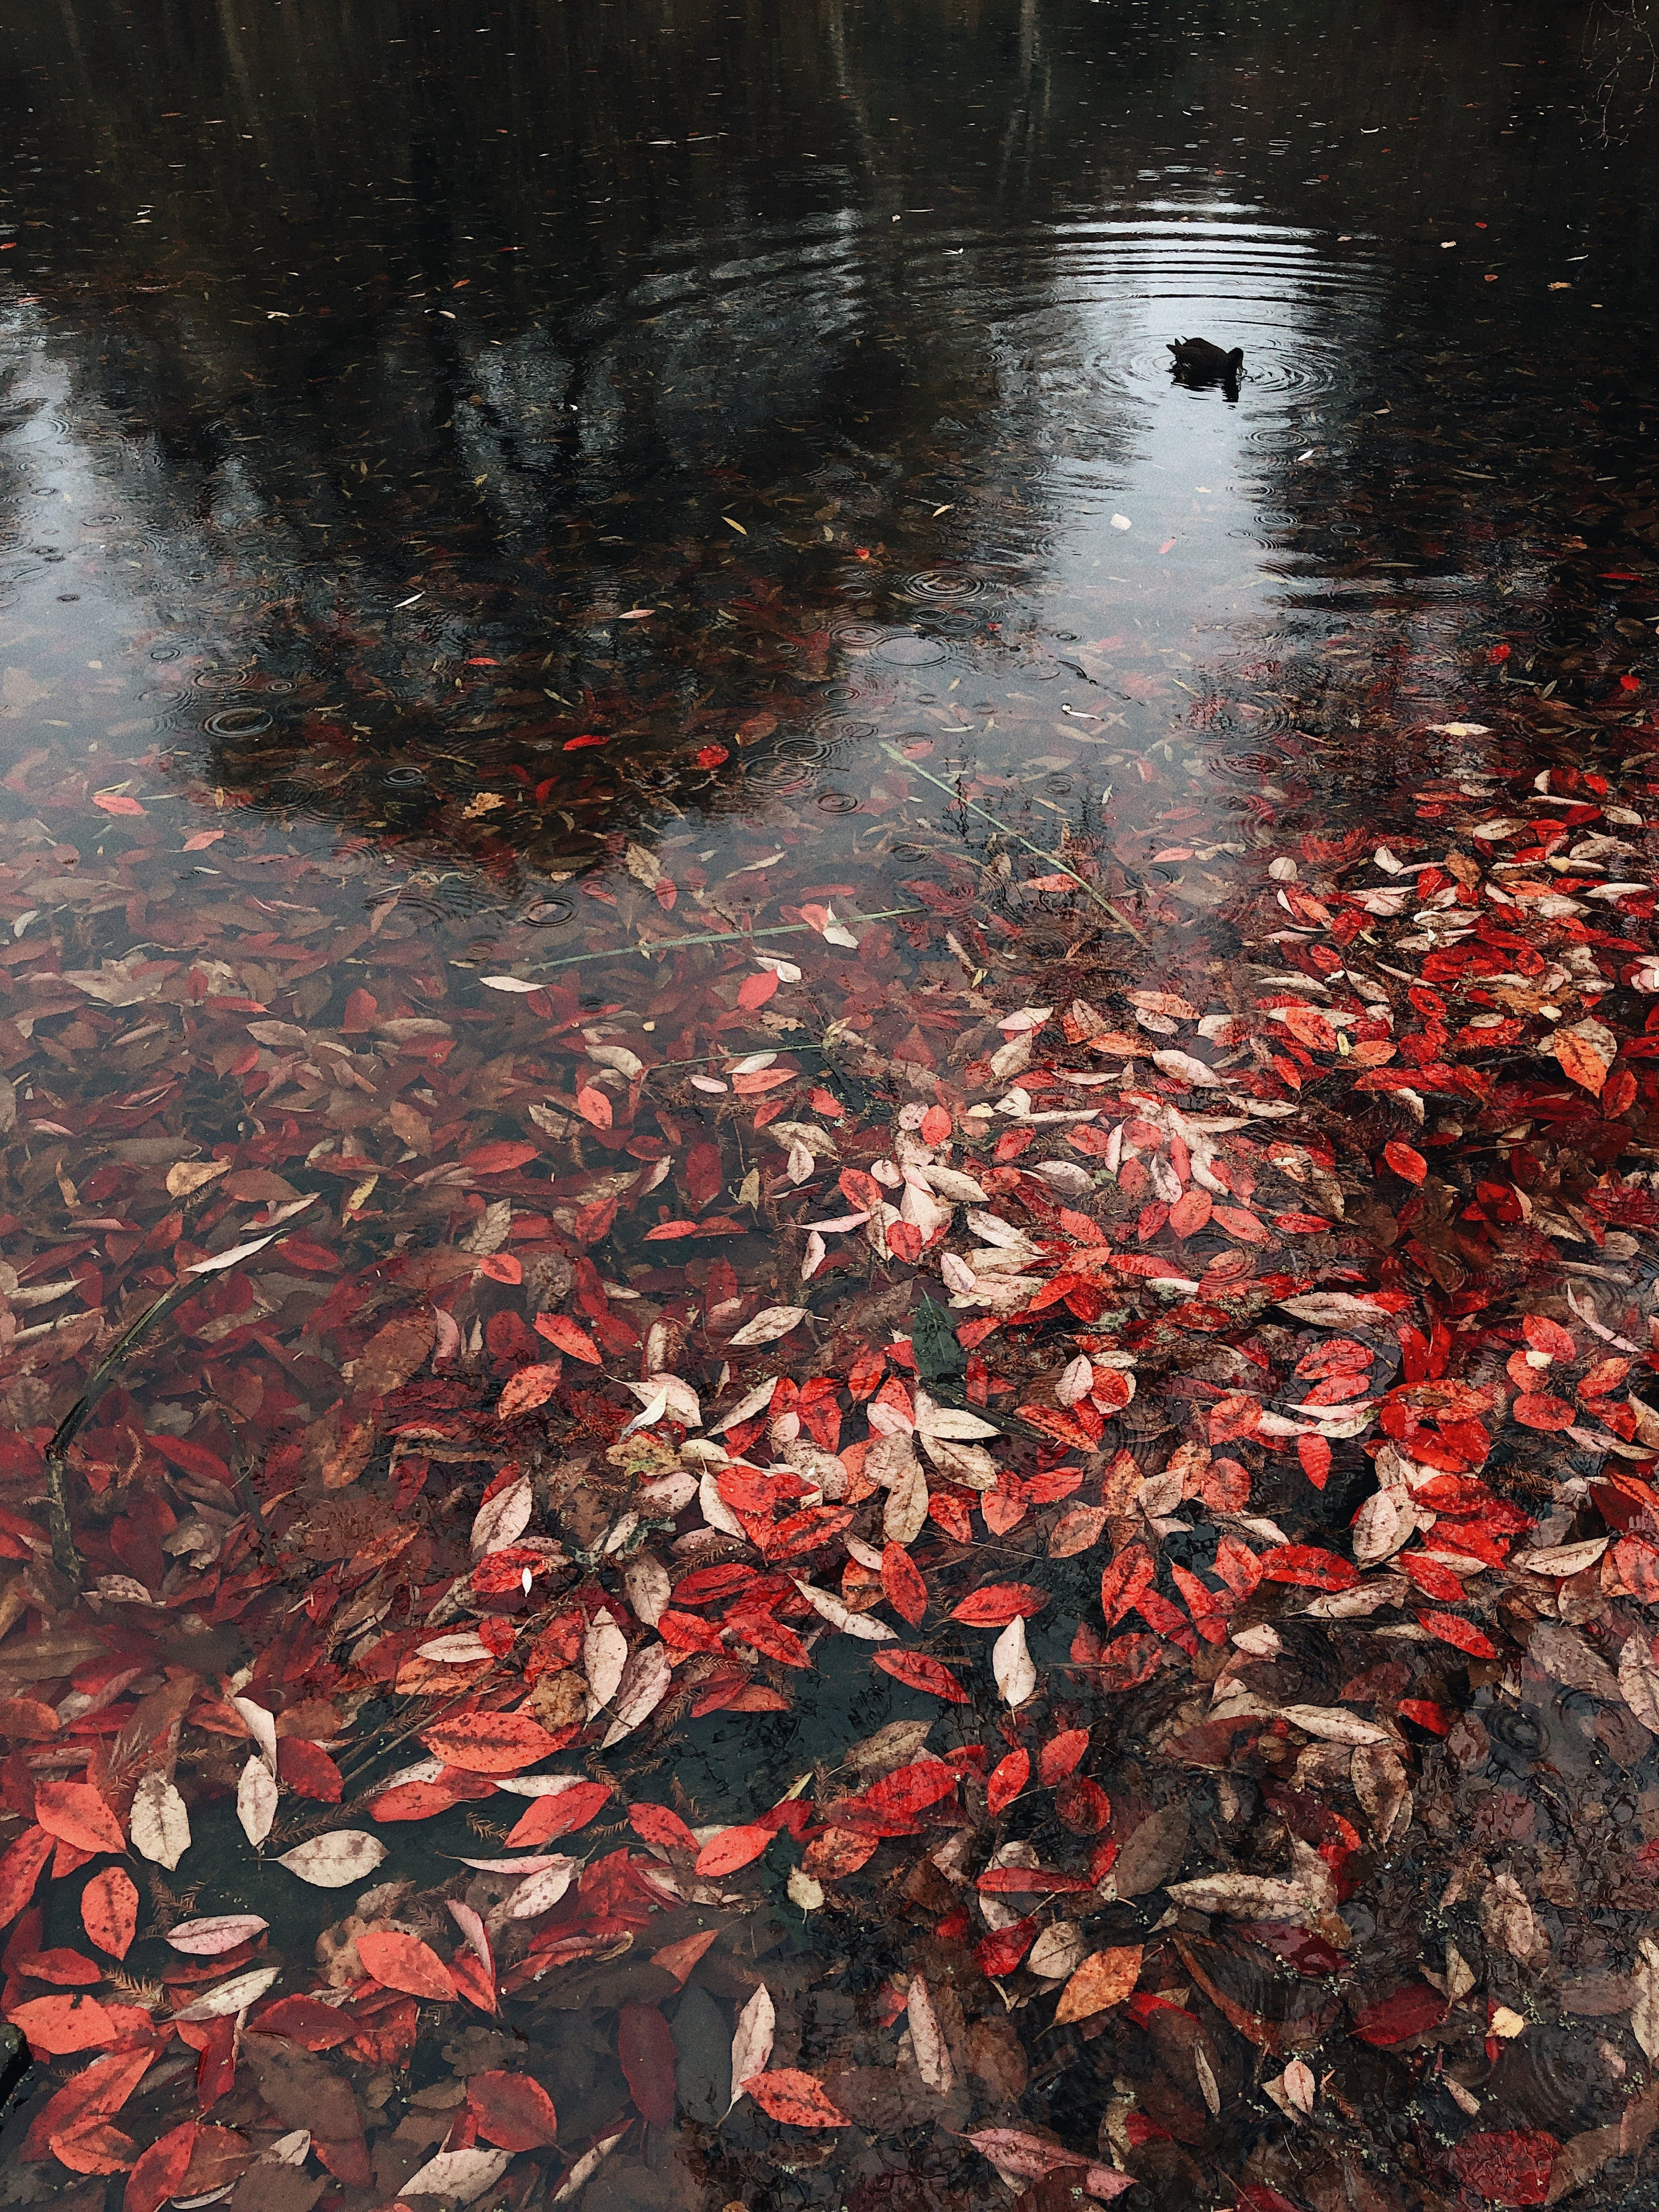 Body of Water With Leaves